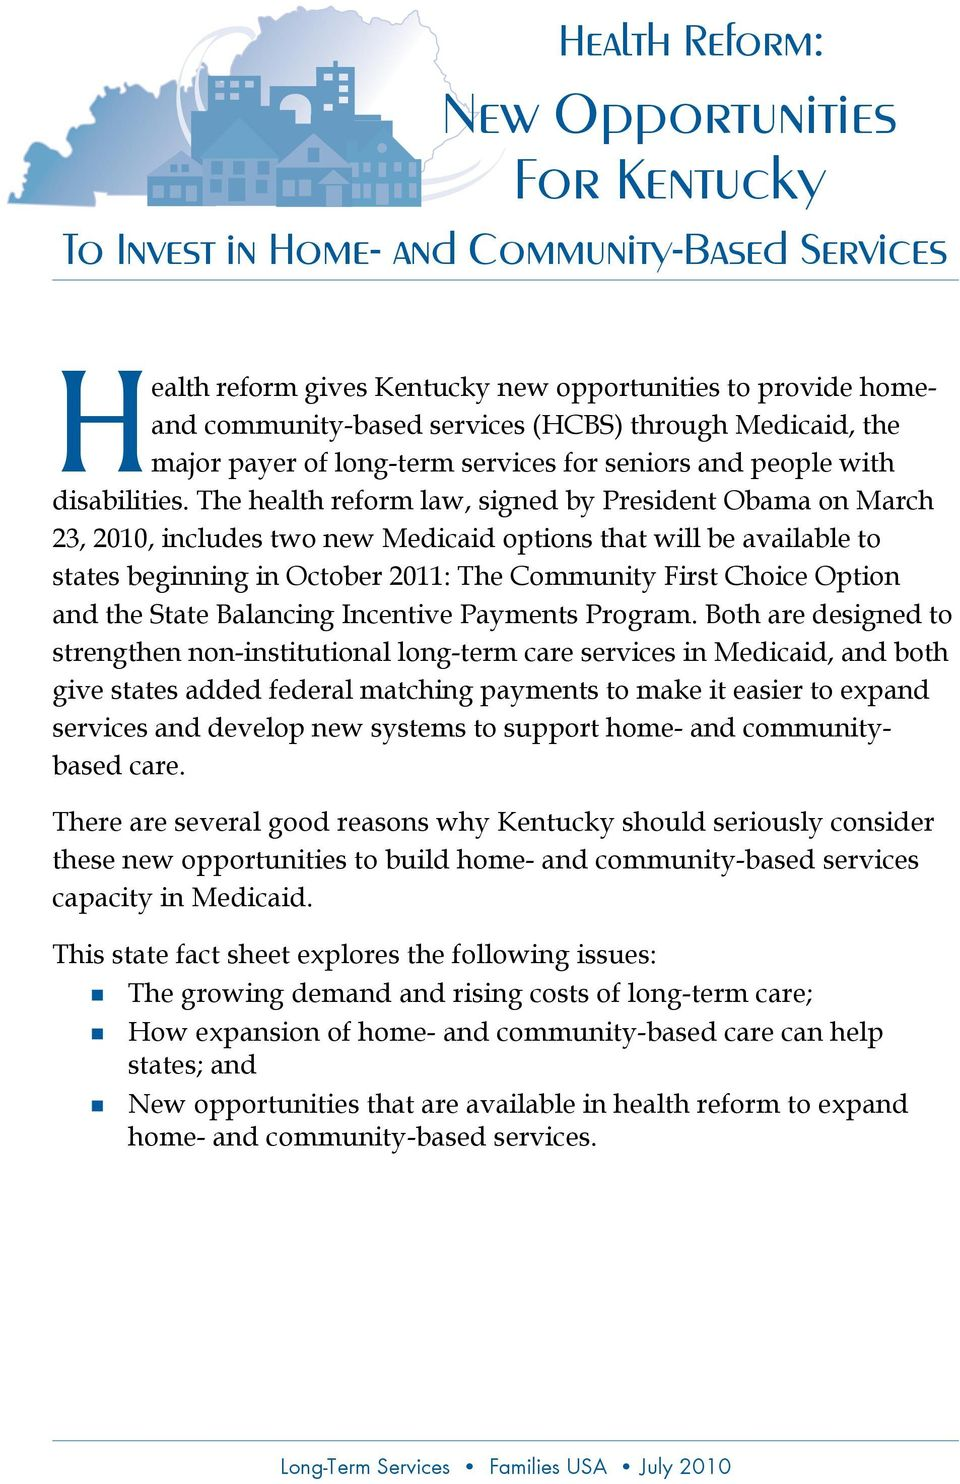 The health reform law, signed by President Obama on March 23, 2010, includes two new Medicaid options that will be available to states beginning in October 2011: The Community First Choice Option and